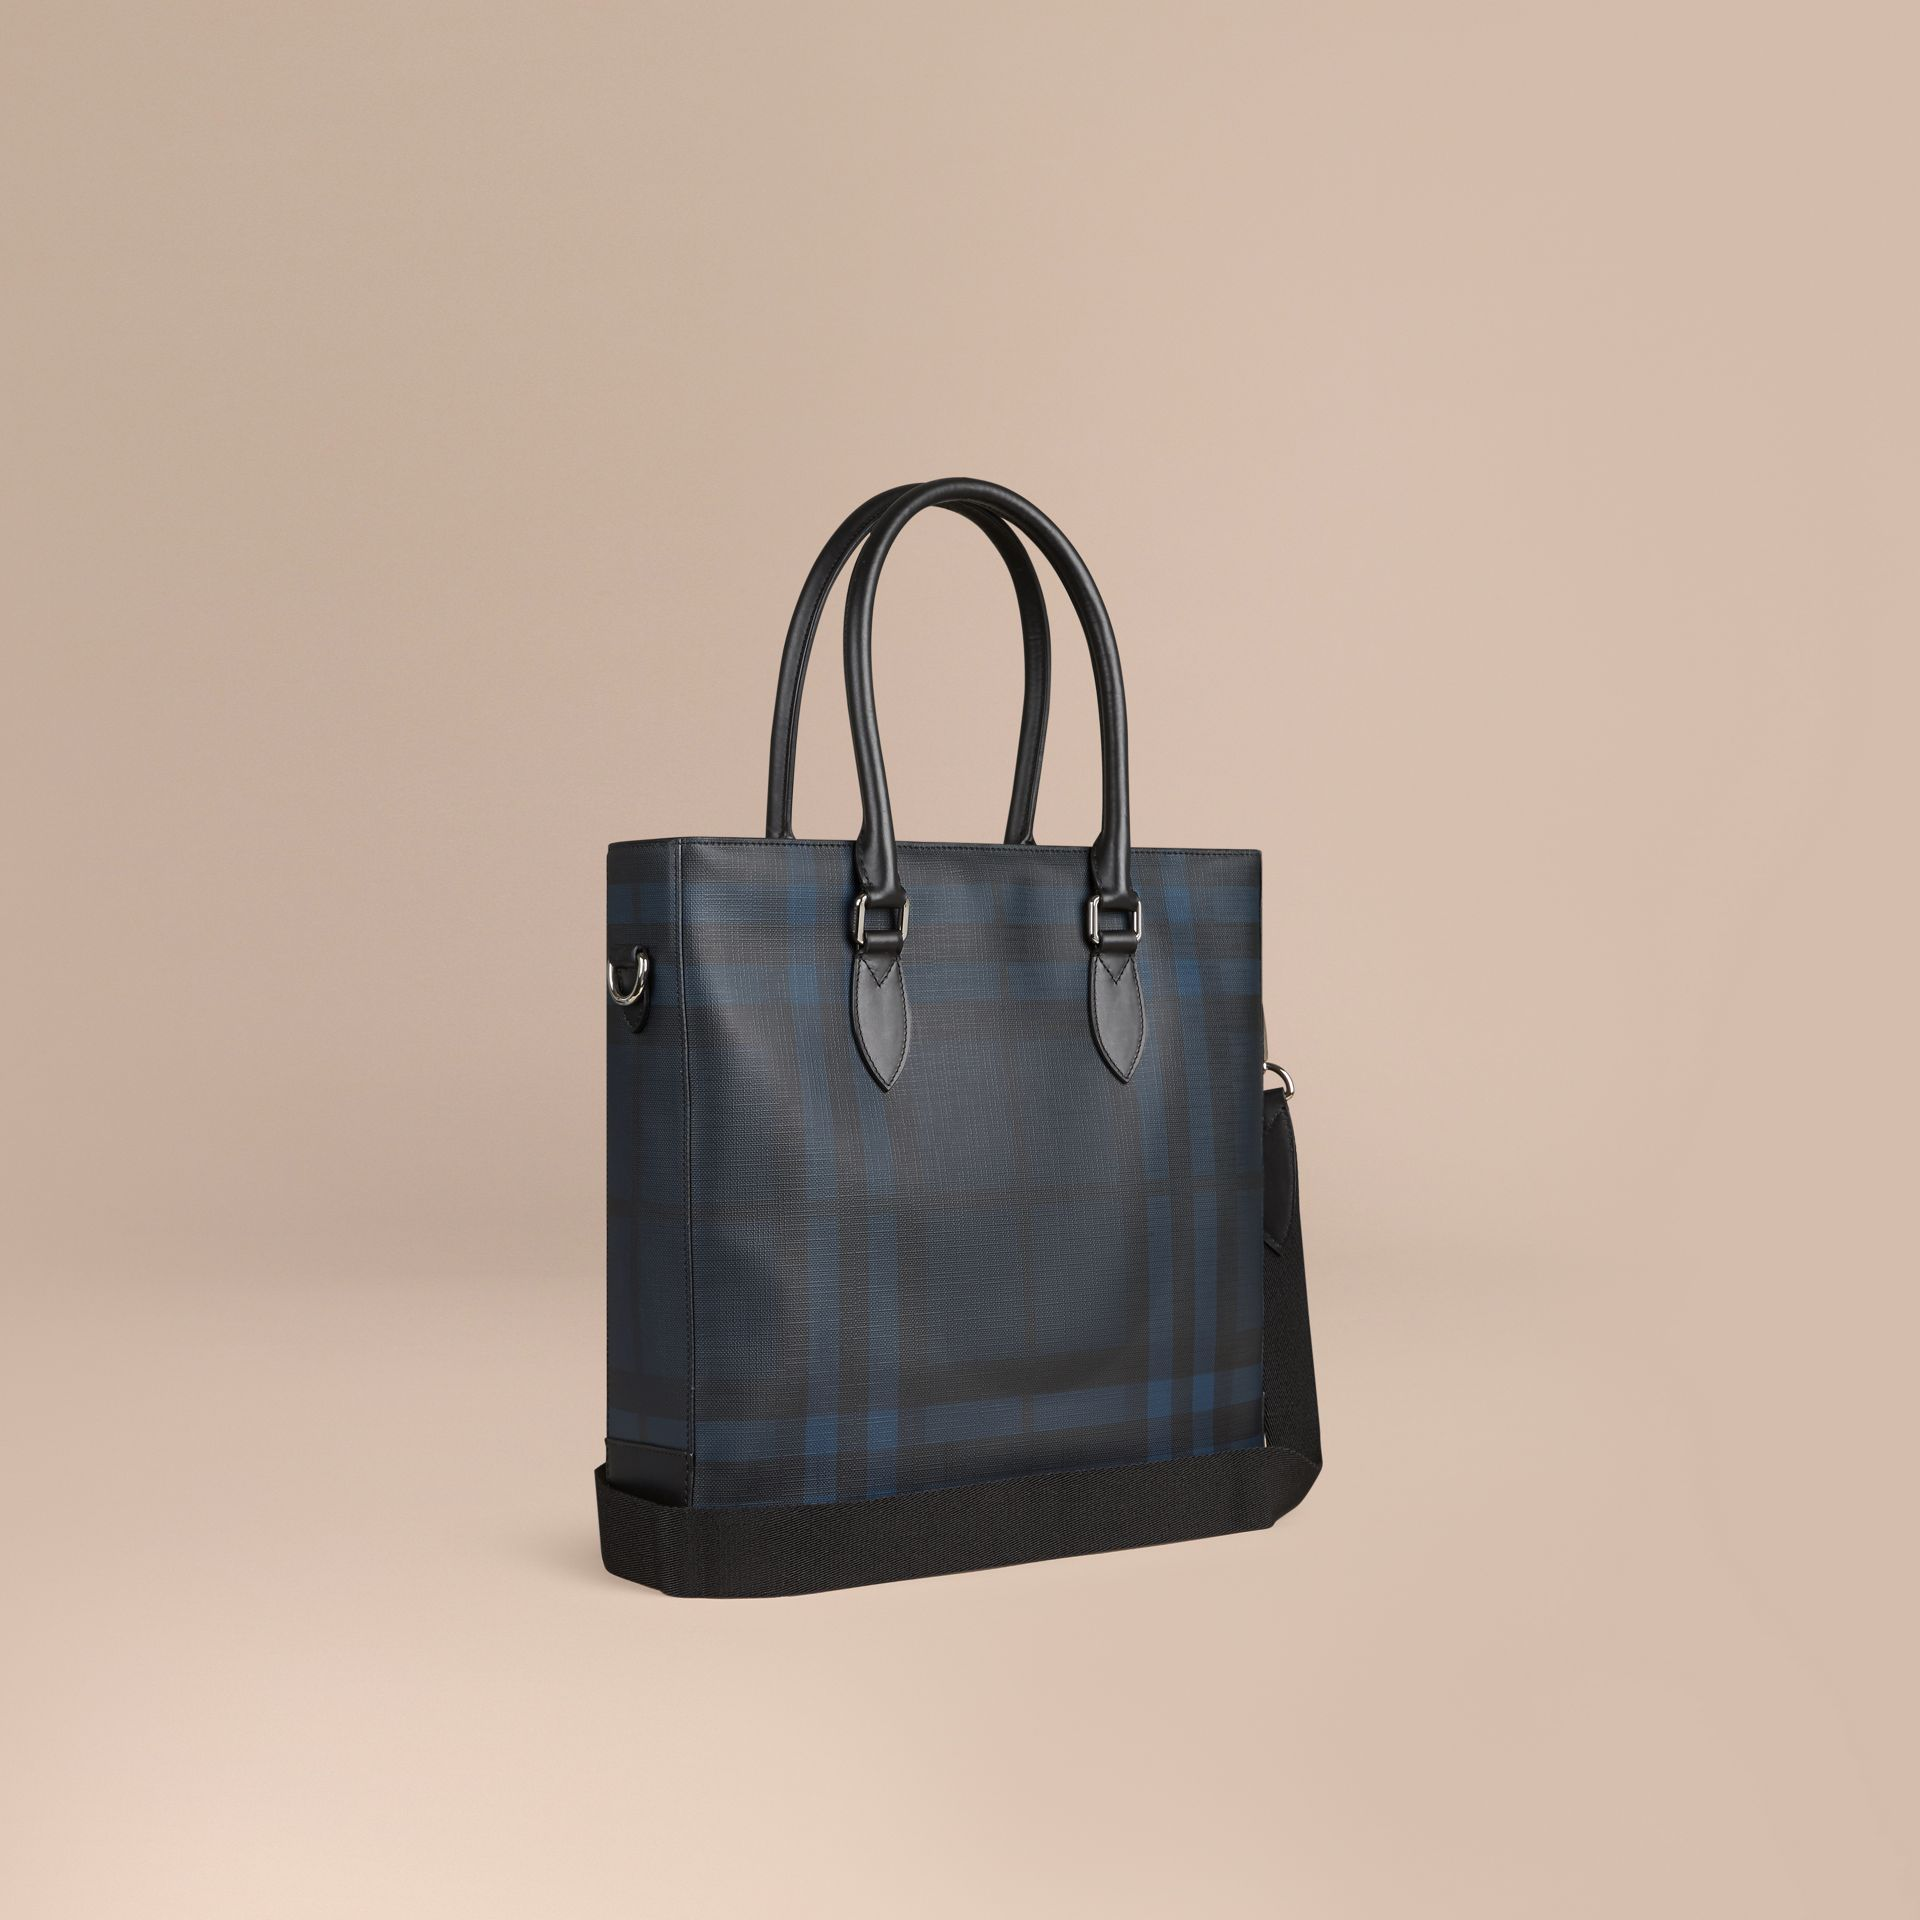 London Check Tote Bag in Navy/black - Men | Burberry - gallery image 1